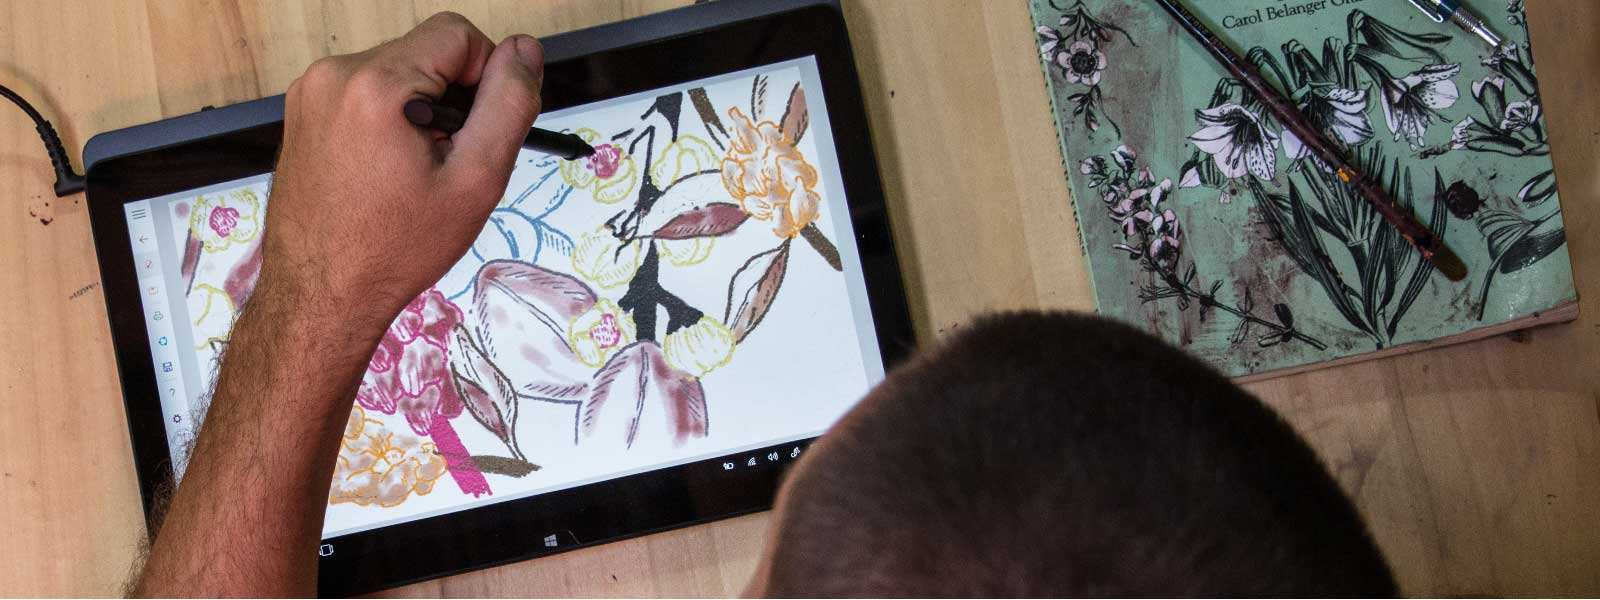 Windows Ink sur Lenovo Yoga en mode tablette